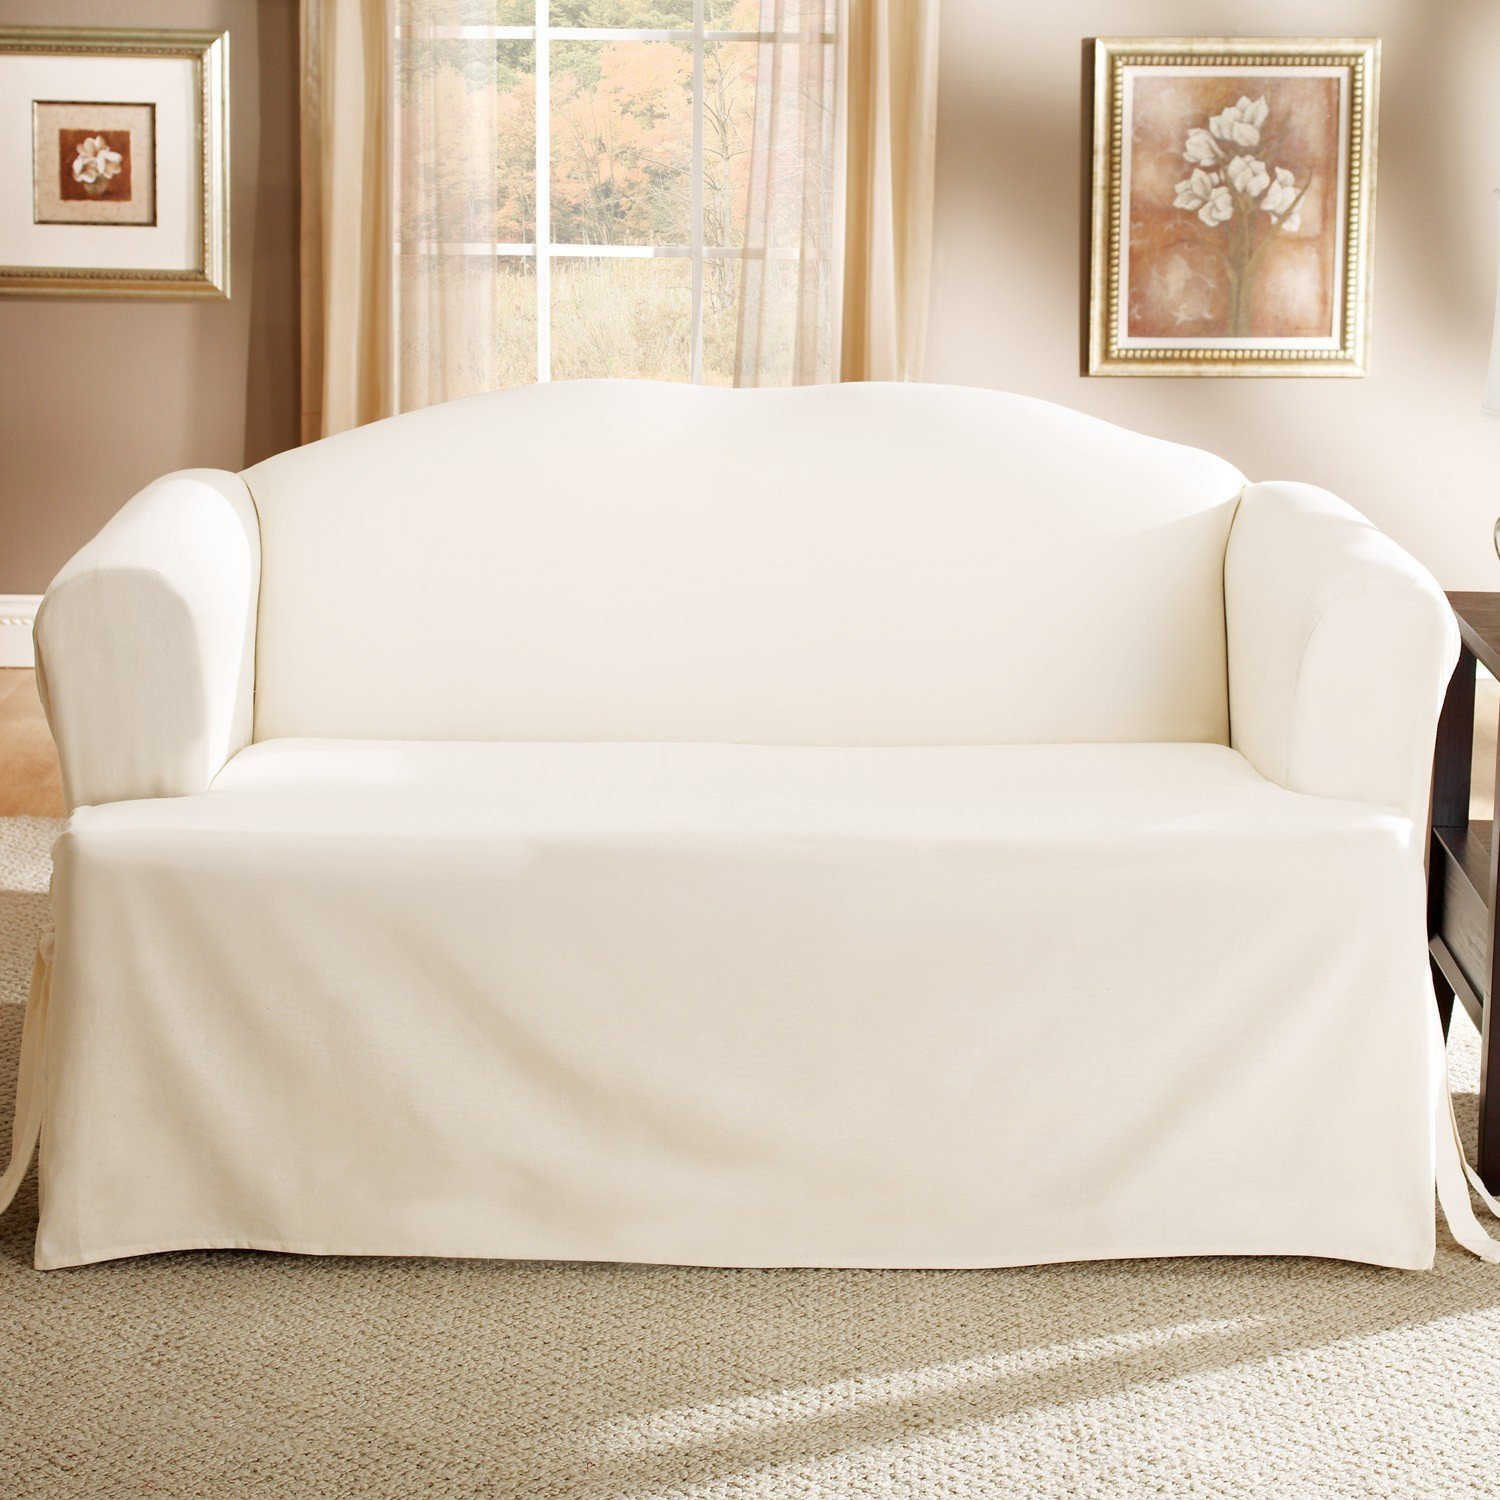 Slipcovers Create Slipcovers For Parson Chairs With French Pleats